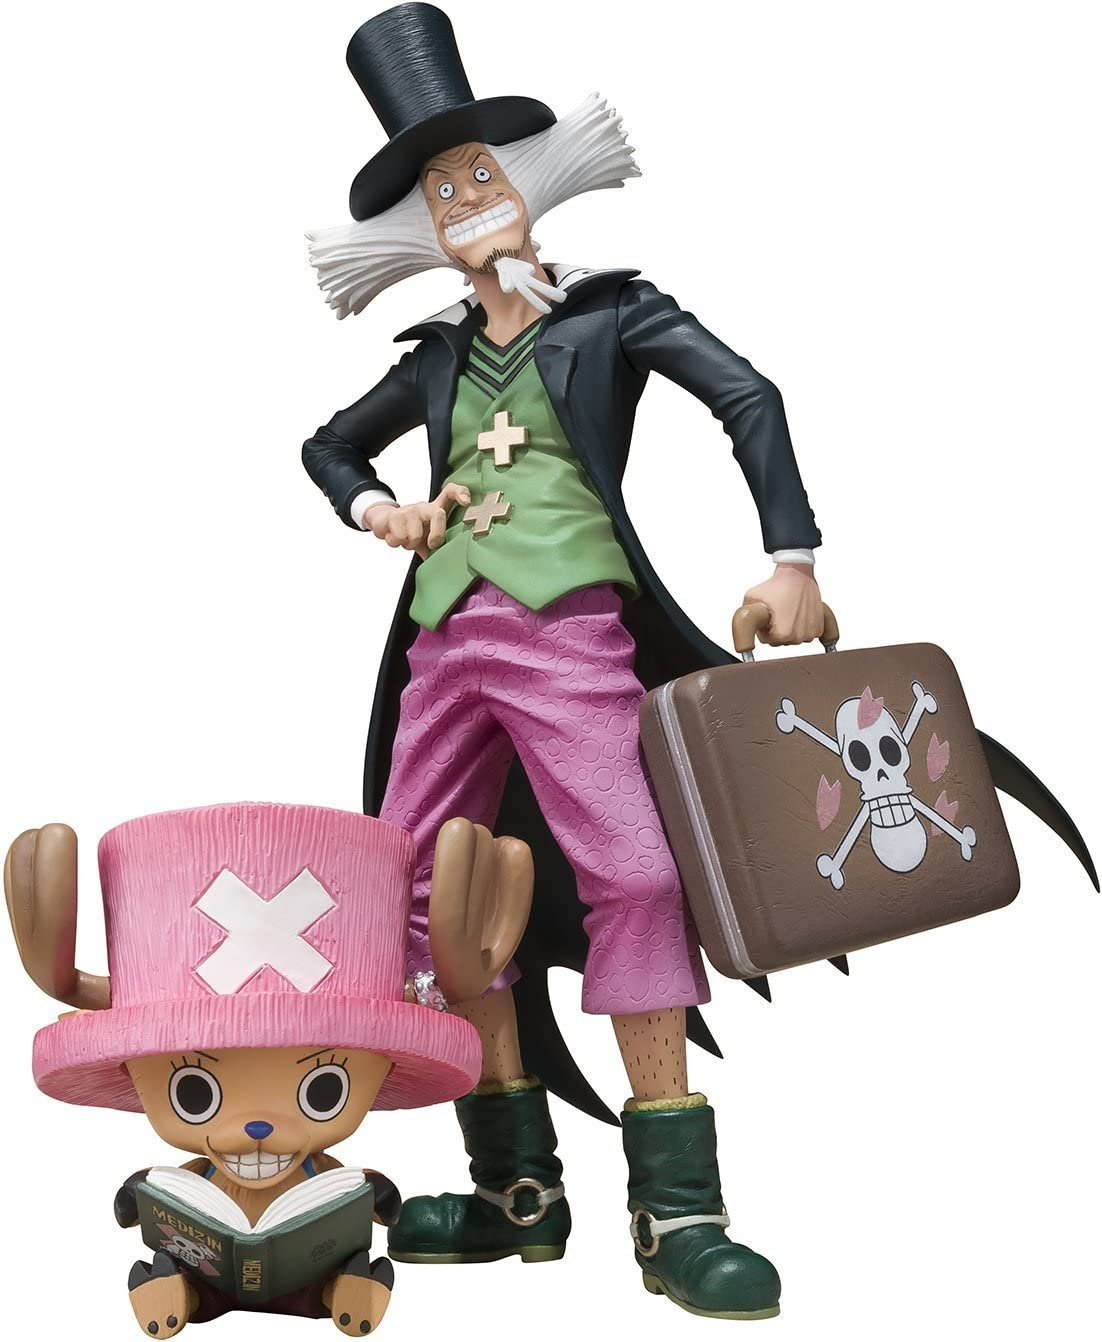 Tony Tony Chopper & Dr. Hiluluk - Figuarts Zero - One Piece - Bandai - Tamashi Nation